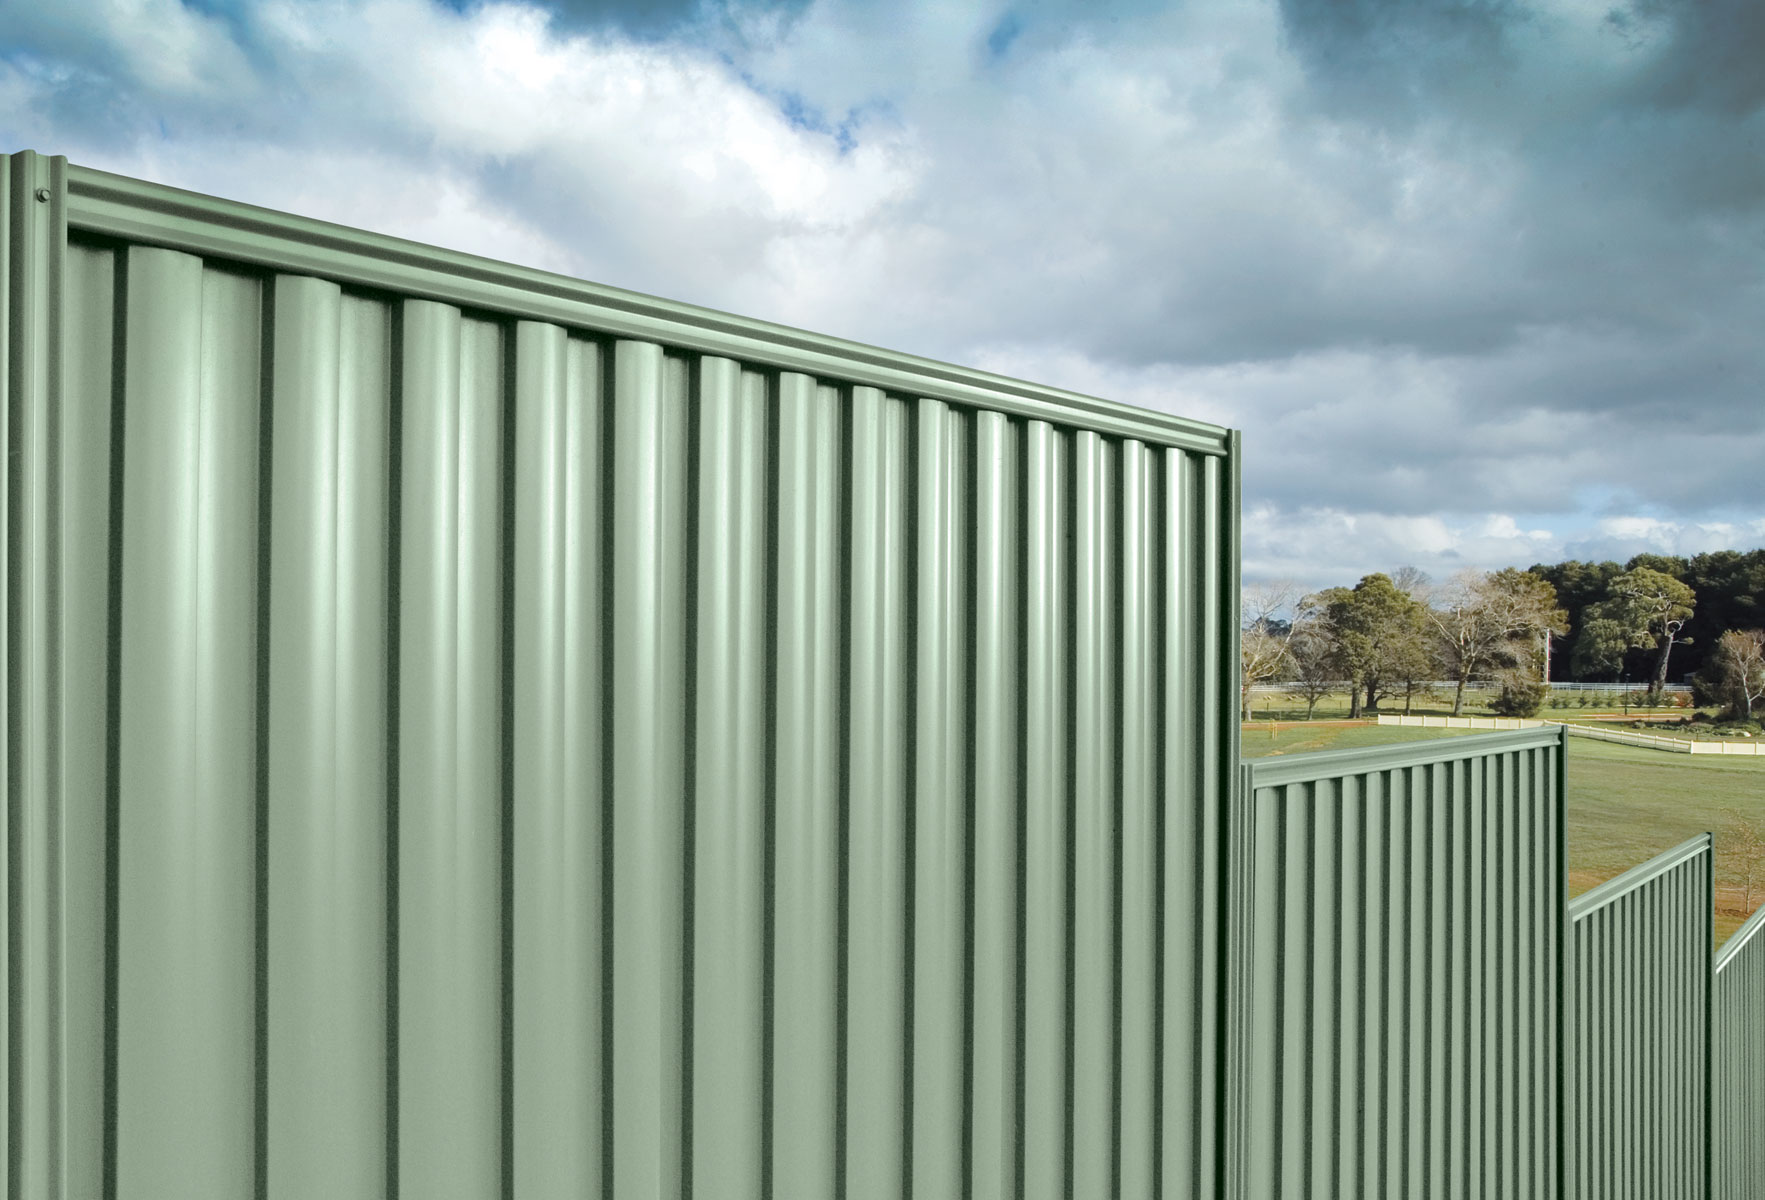 stratco good neighbour fencing installation guide